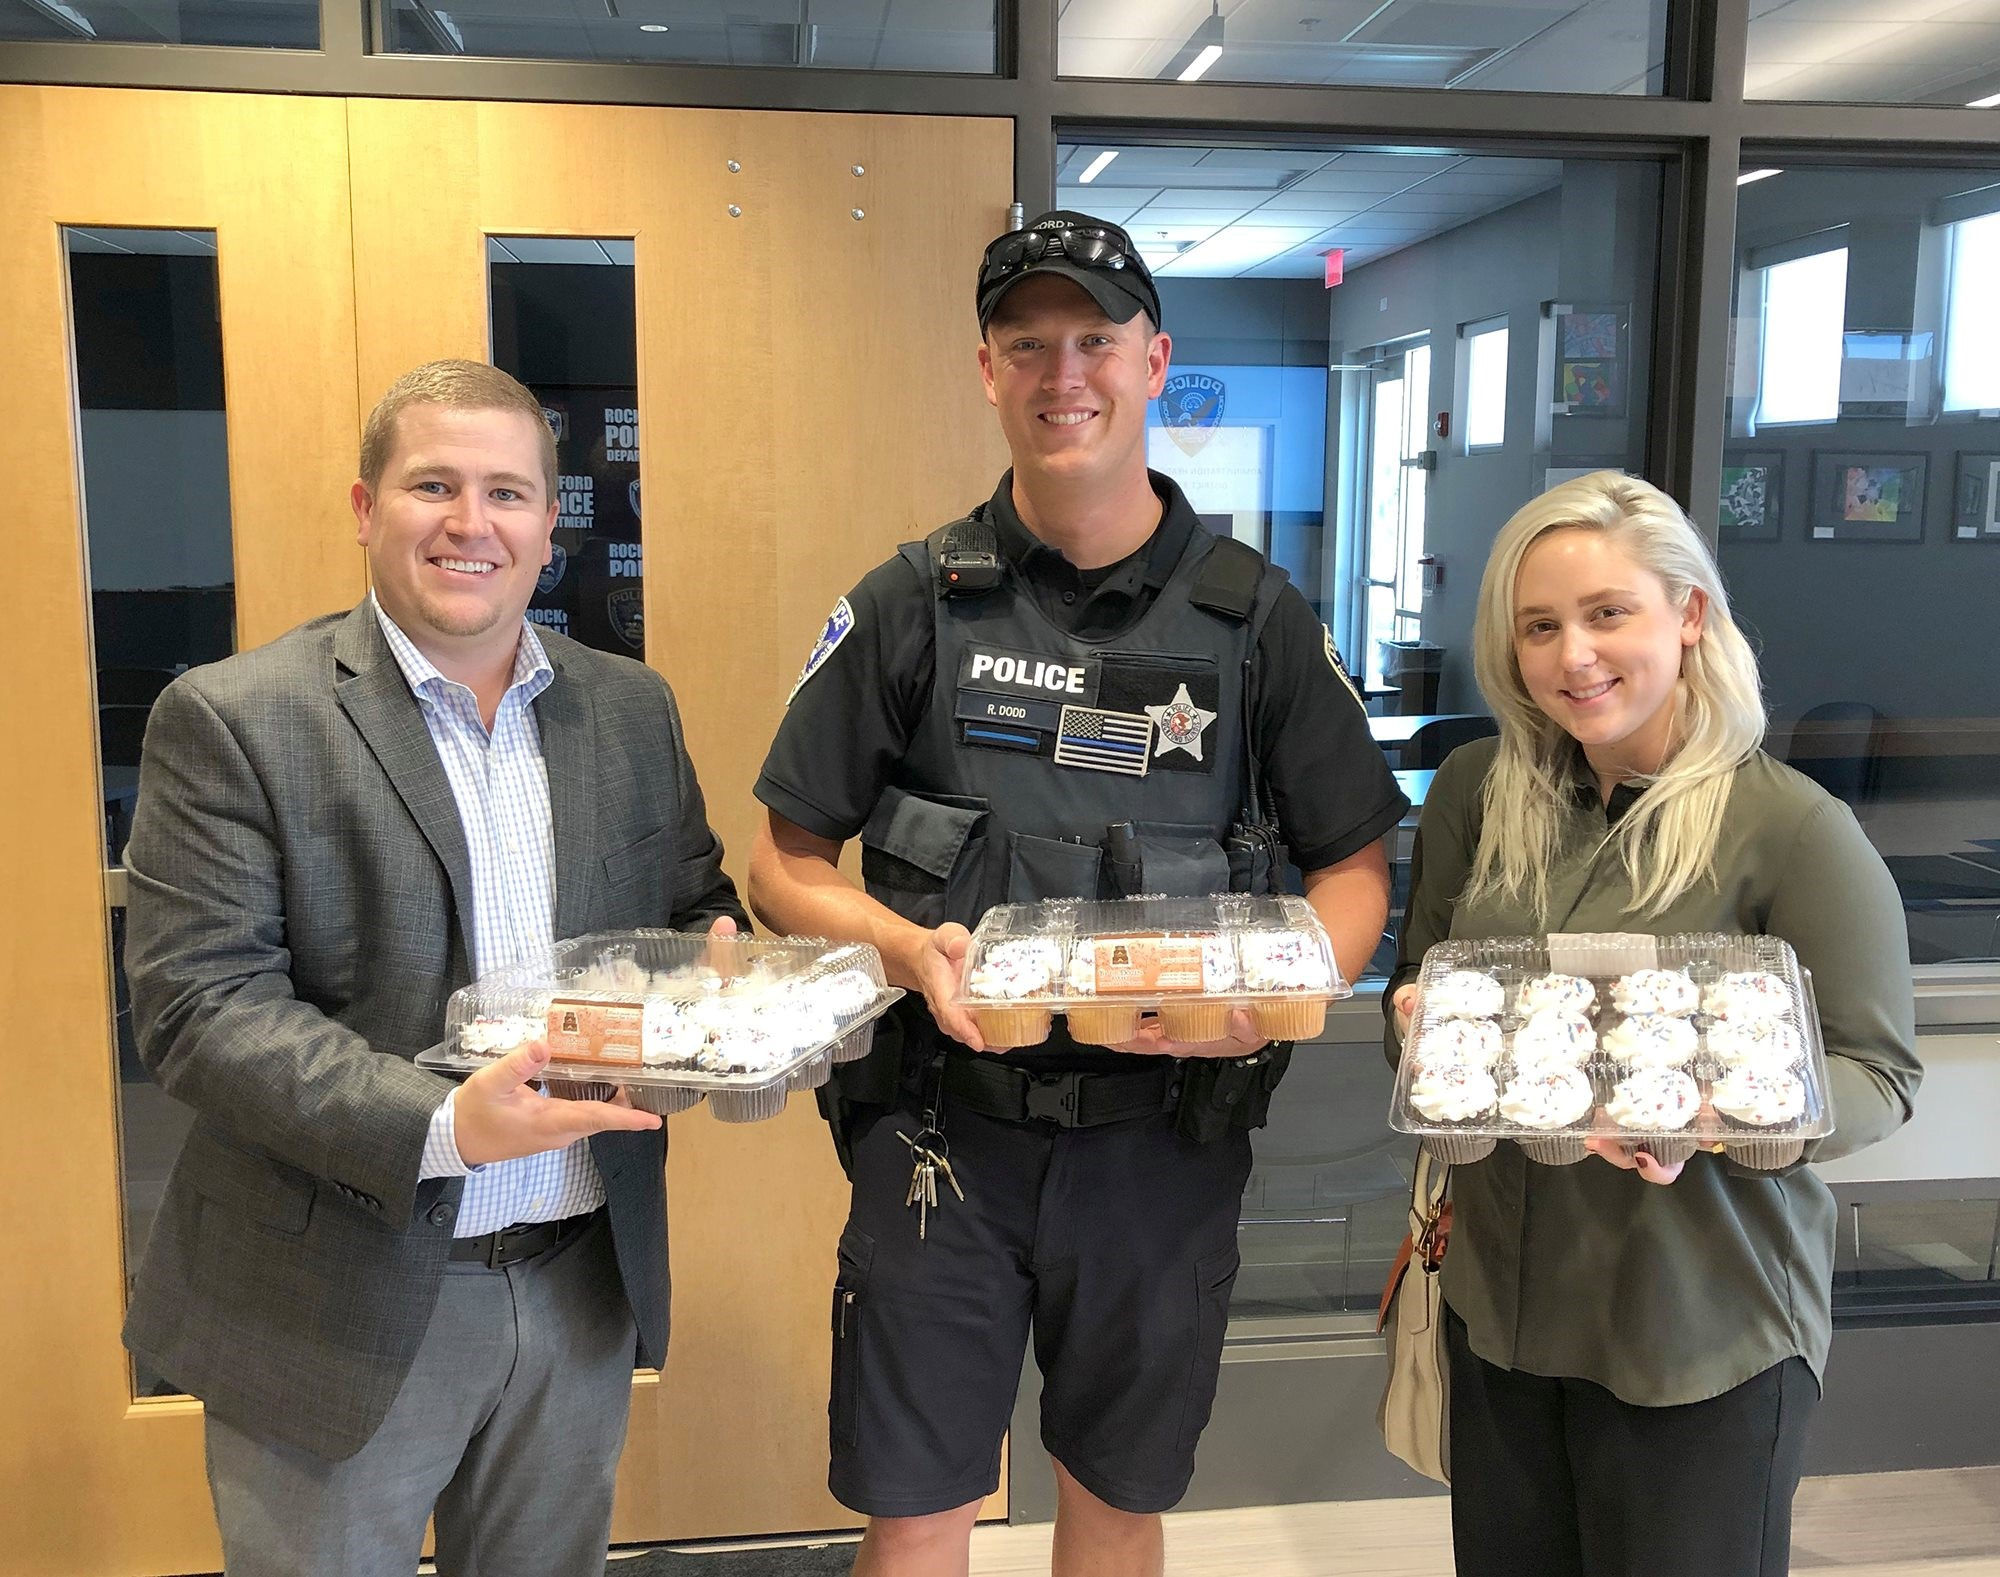 Cleo Cares 2018: 9/11 Fire and Police Appreciation